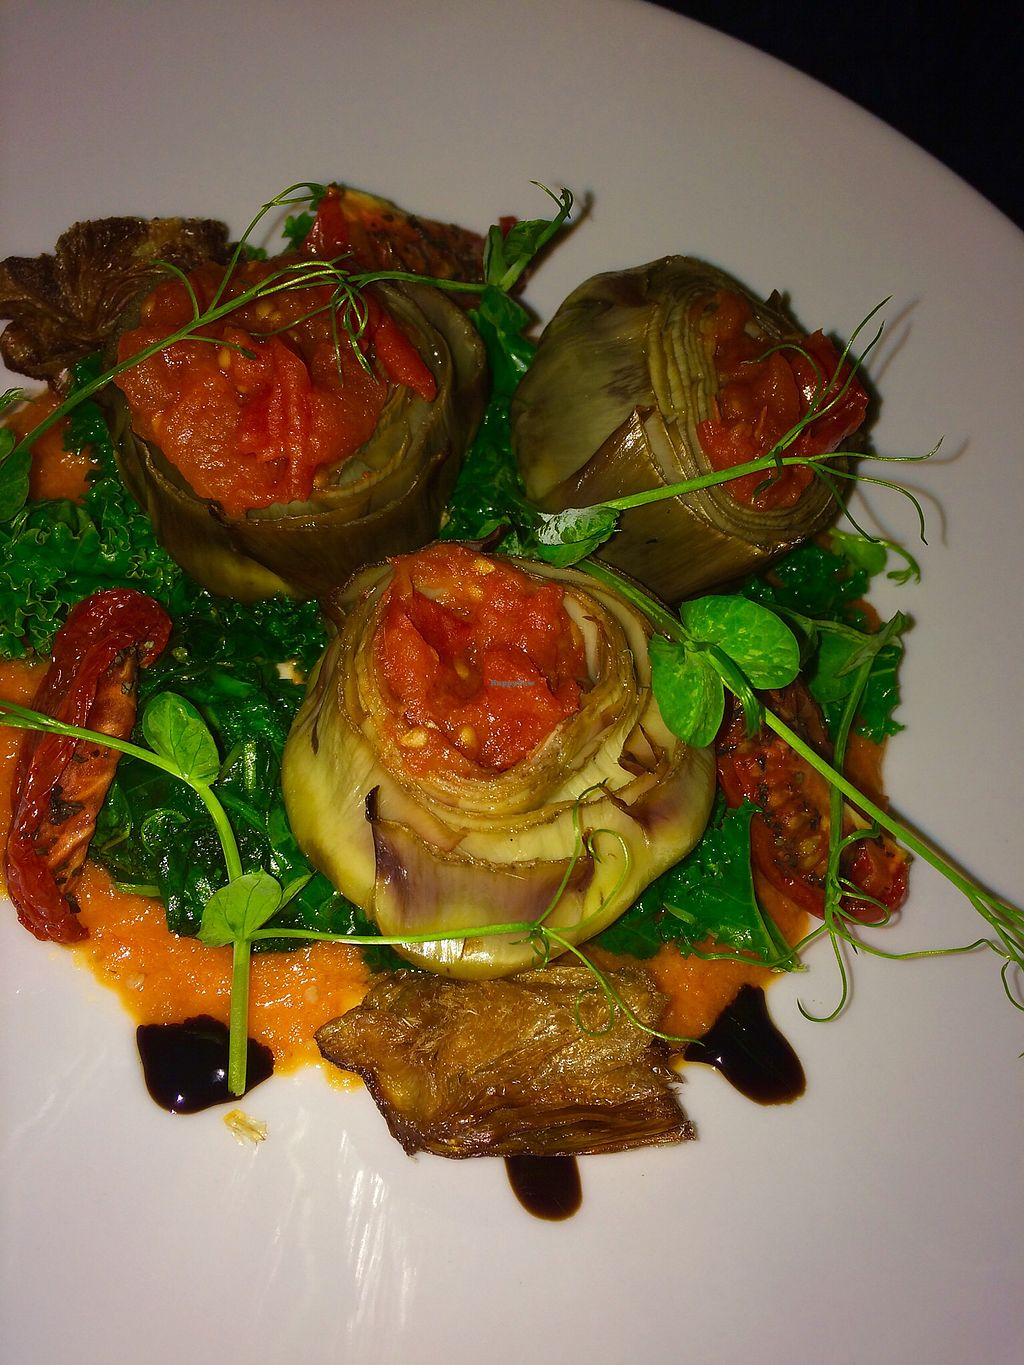 "Photo of Fallon and Byrne  by <a href=""/members/profile/CiaraSlevin"">CiaraSlevin</a> <br/>Roasted globe of artichoke with wilted greens, tomato pesto & pine nuts <br/> April 1, 2018  - <a href='/contact/abuse/image/54290/379505'>Report</a>"